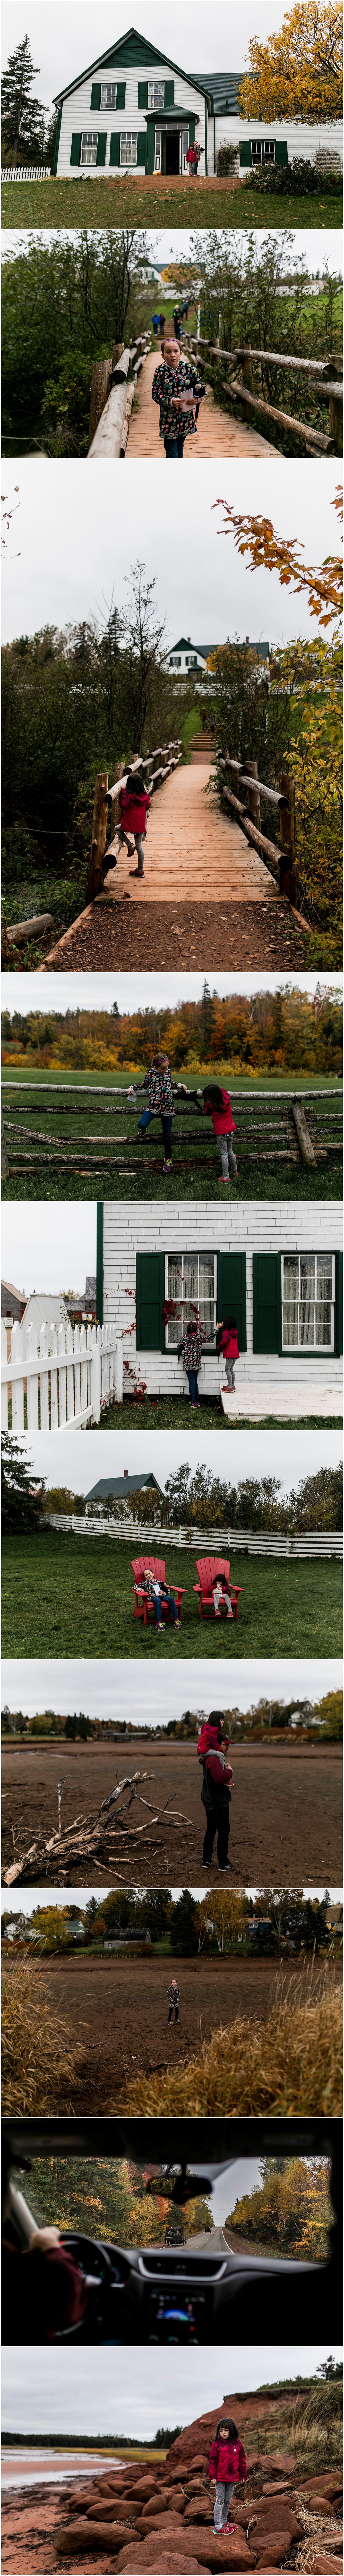 Anne of Green Gables photographer